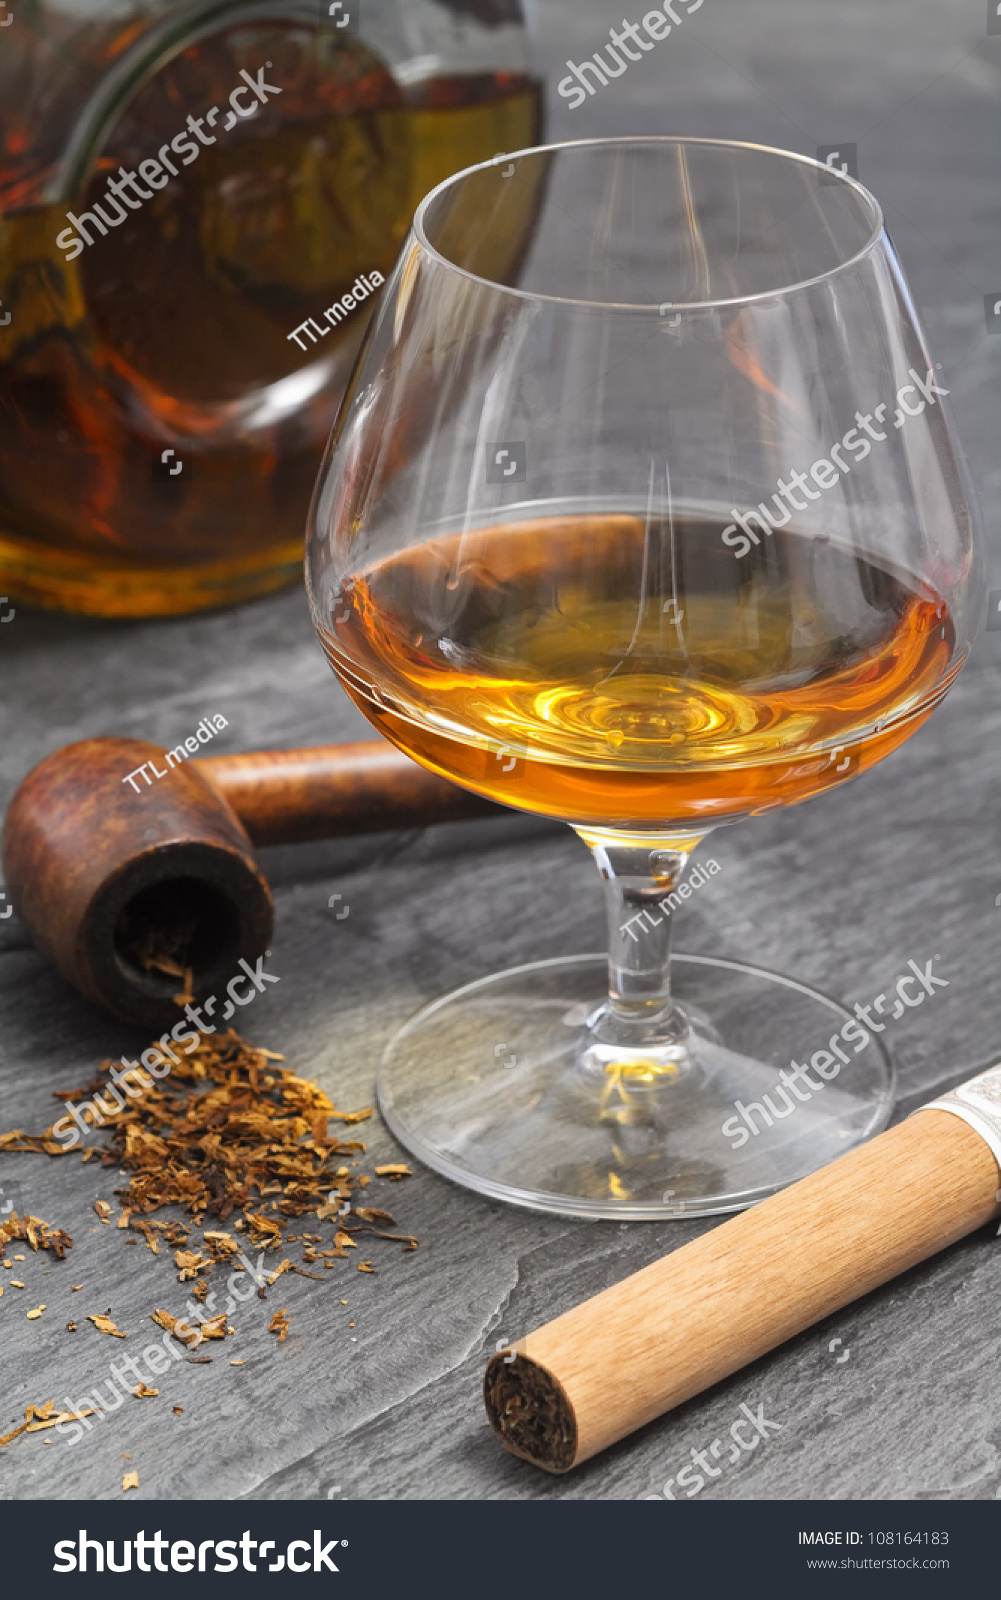 Brandy Glass With Smoke Pipe And Cigar Stock Photo 108164183 : Shutterstock